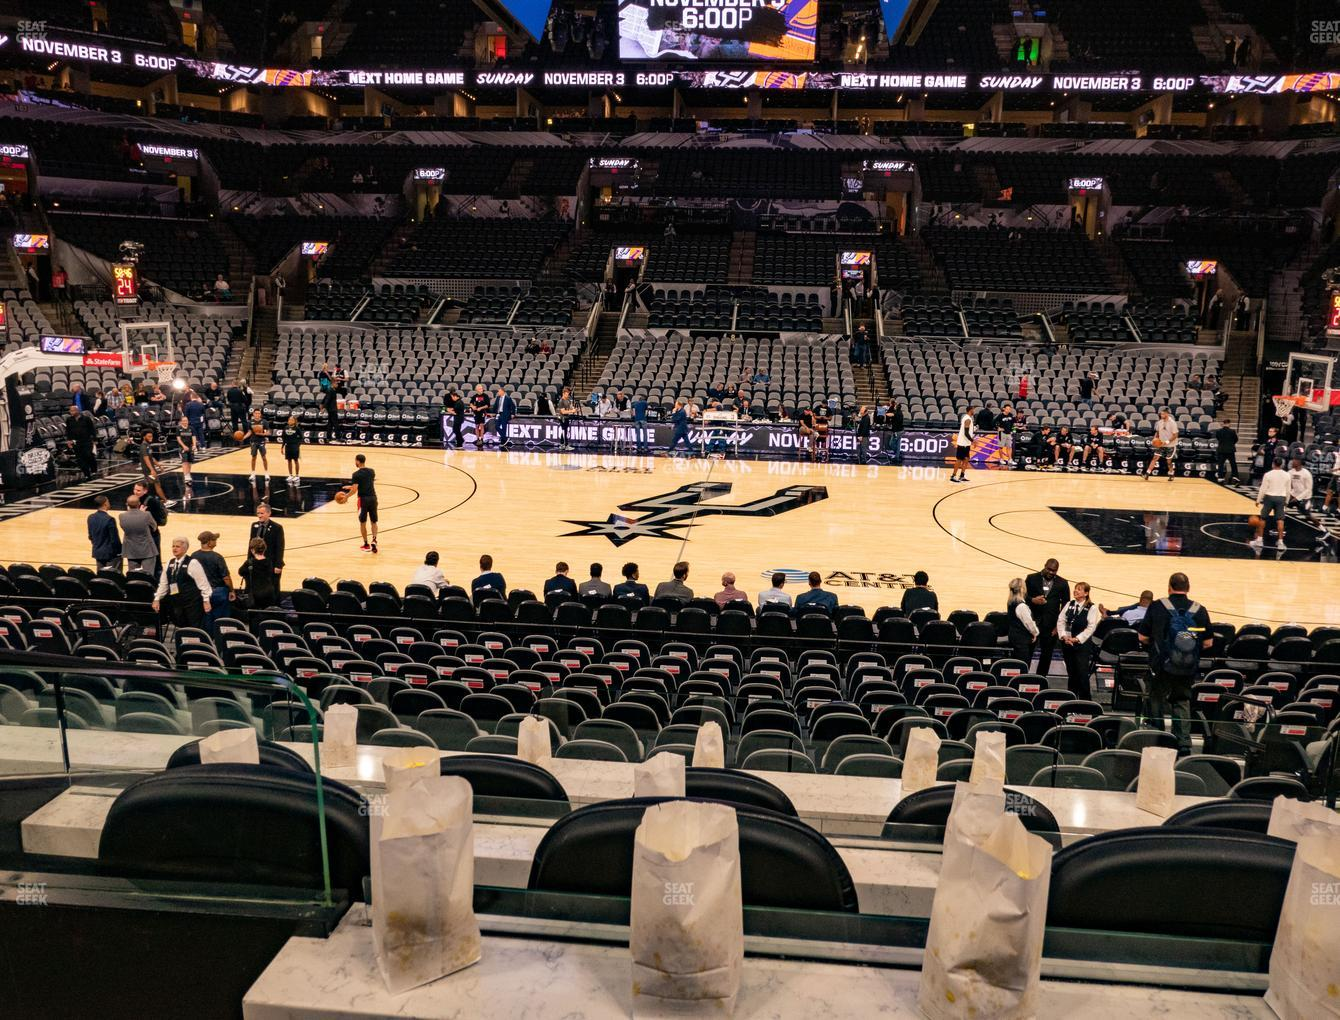 San Antonio Spurs at AT&T Center Box 4 View